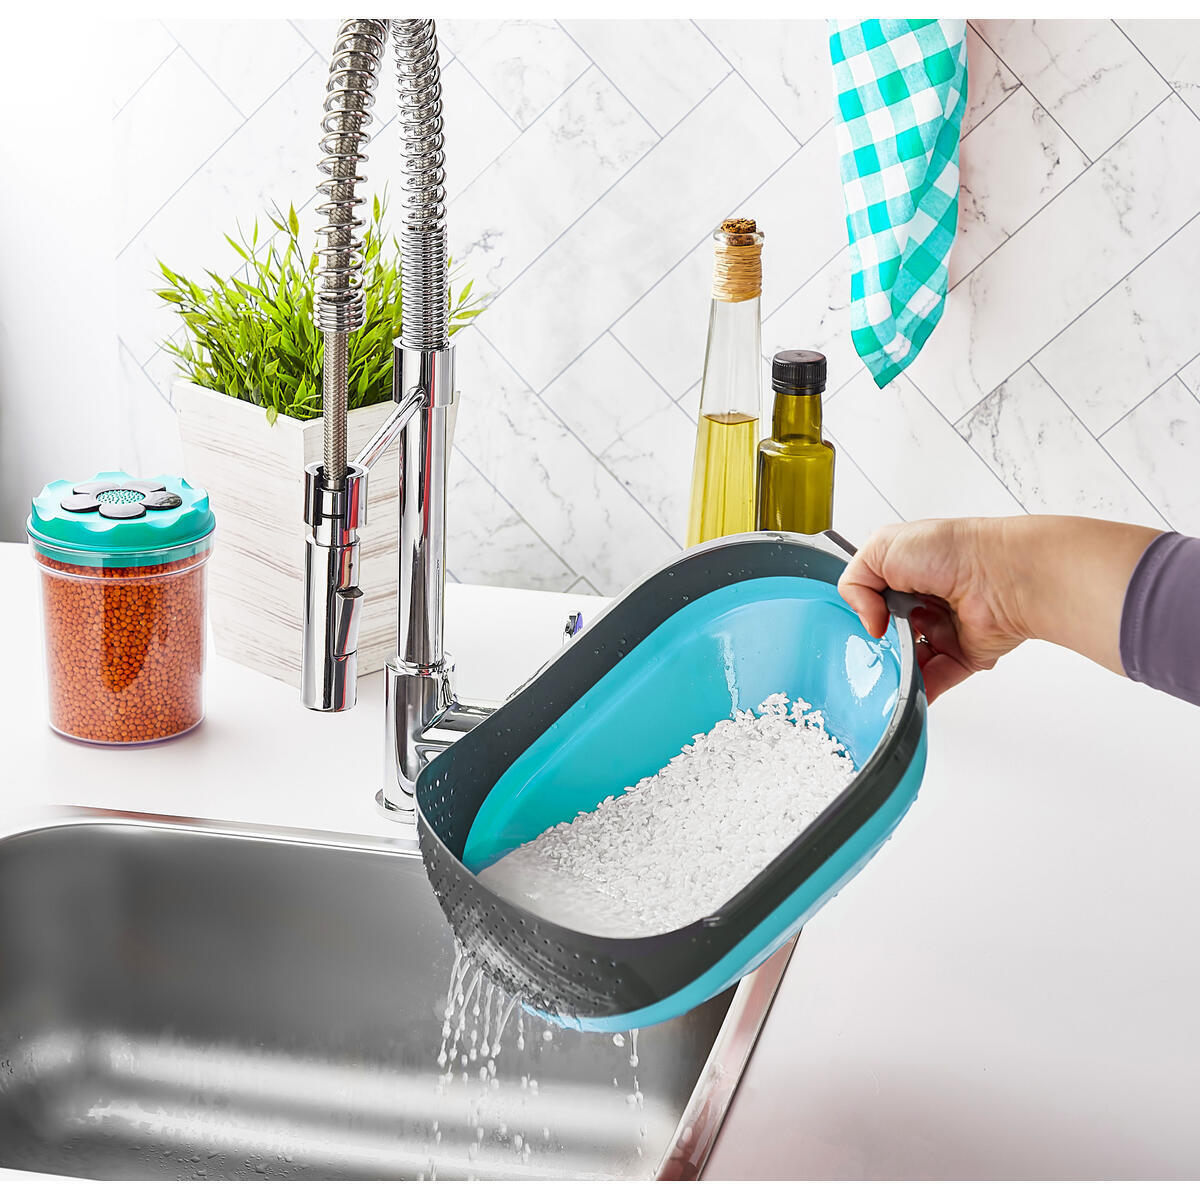 Silicone Collapsible Colanders with Handles-plastic colander fine-3quart kitchen Food Strainers-Rice Noodle Pasta Fruit and Vegetable Cooking strainer-Dishwasher safe Bowl Drainer Basket (Turquoise)